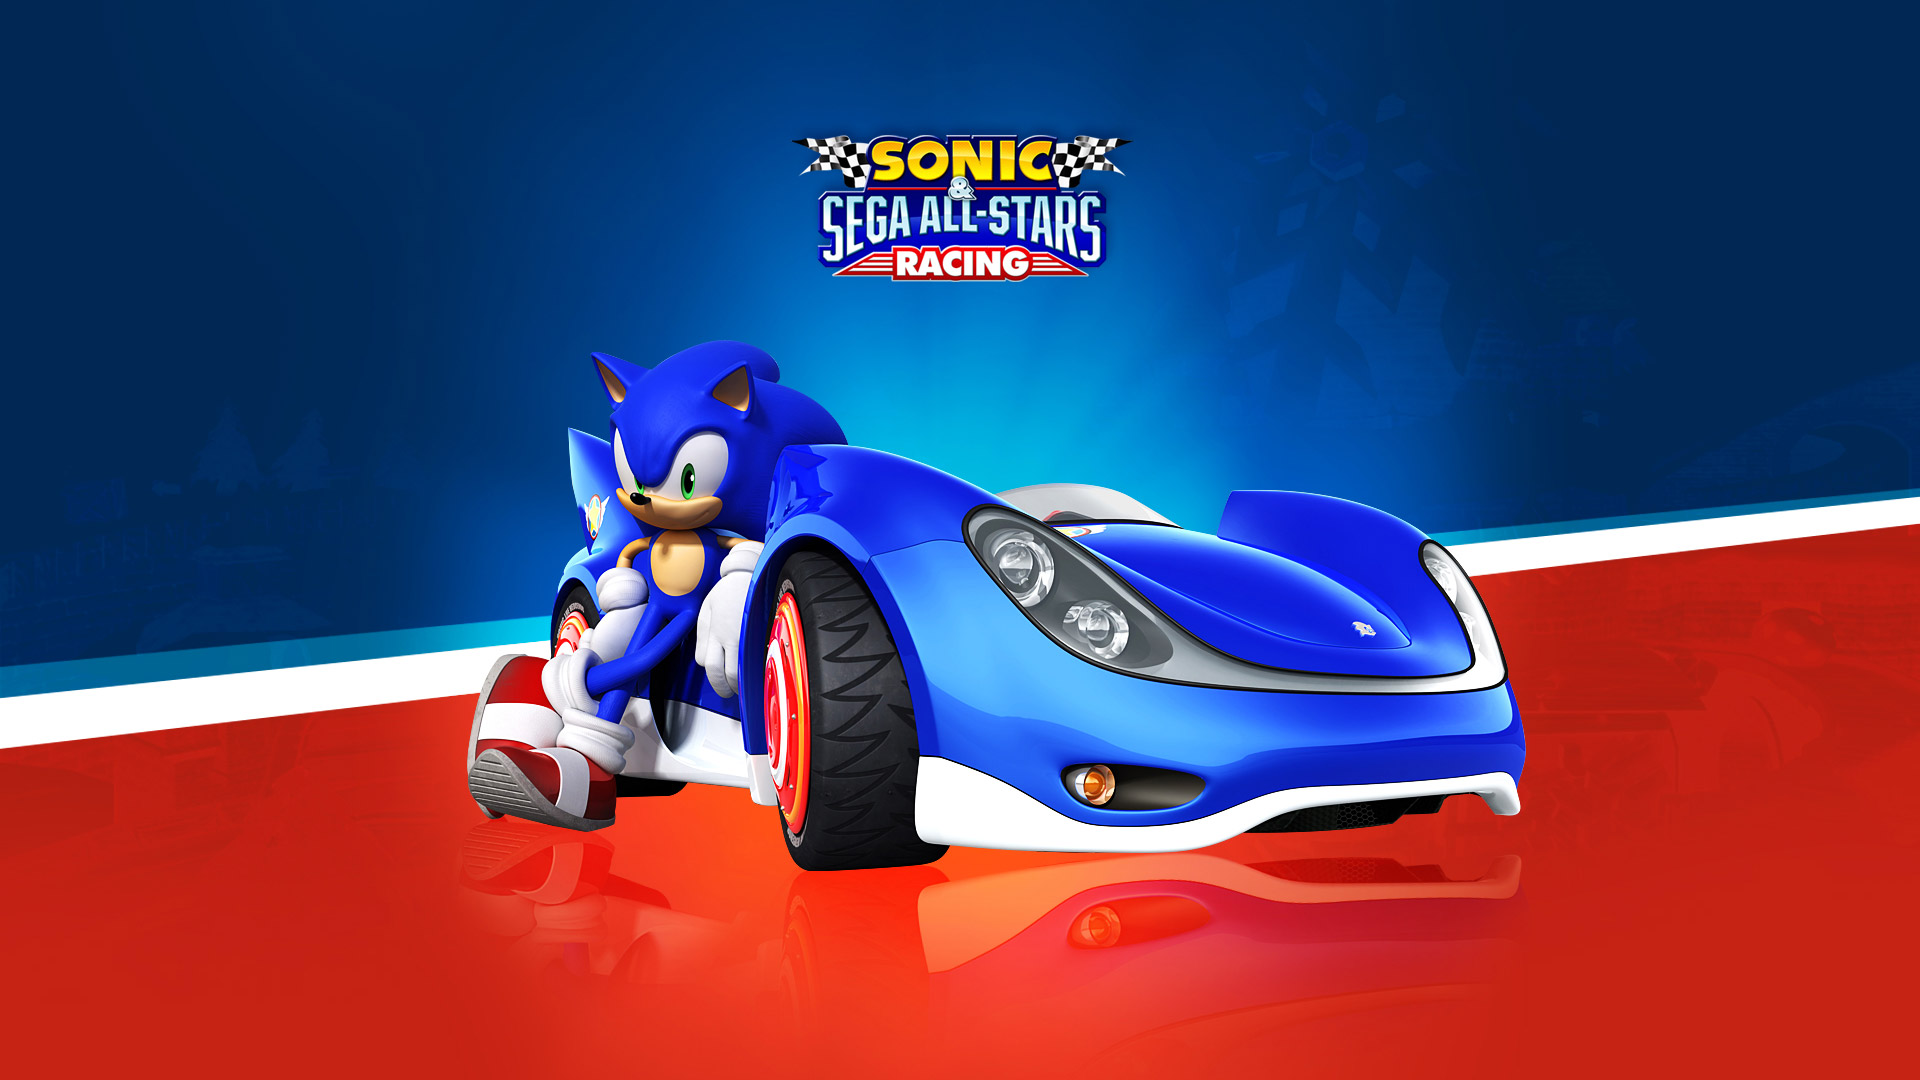 Free Sonic & Sega All-Stars Racing Wallpaper in 1920x1080